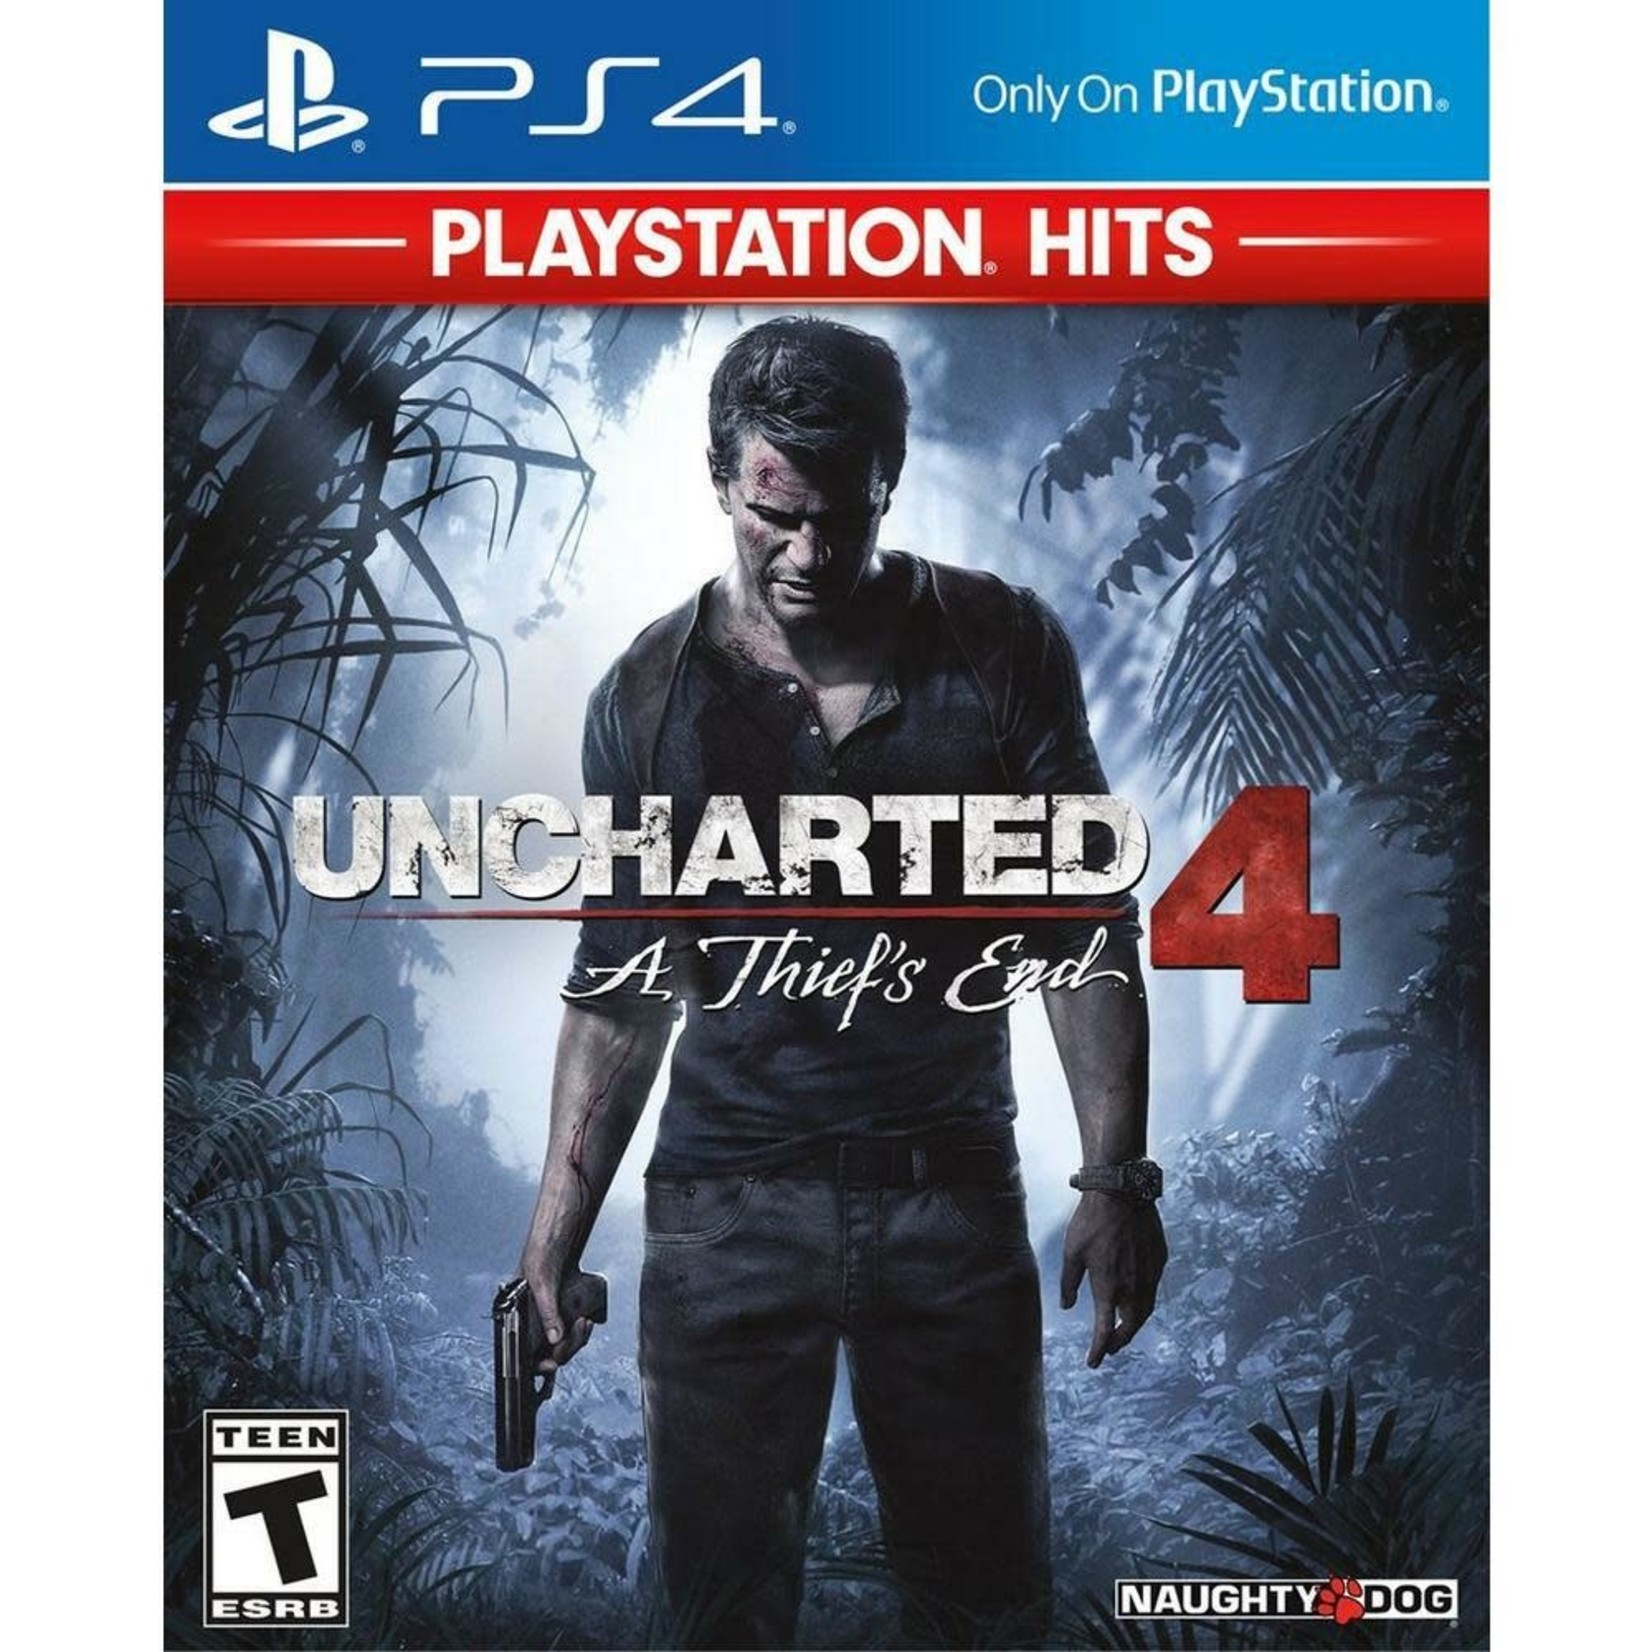 PS4U-UNCHARTED 4: A Thief's End